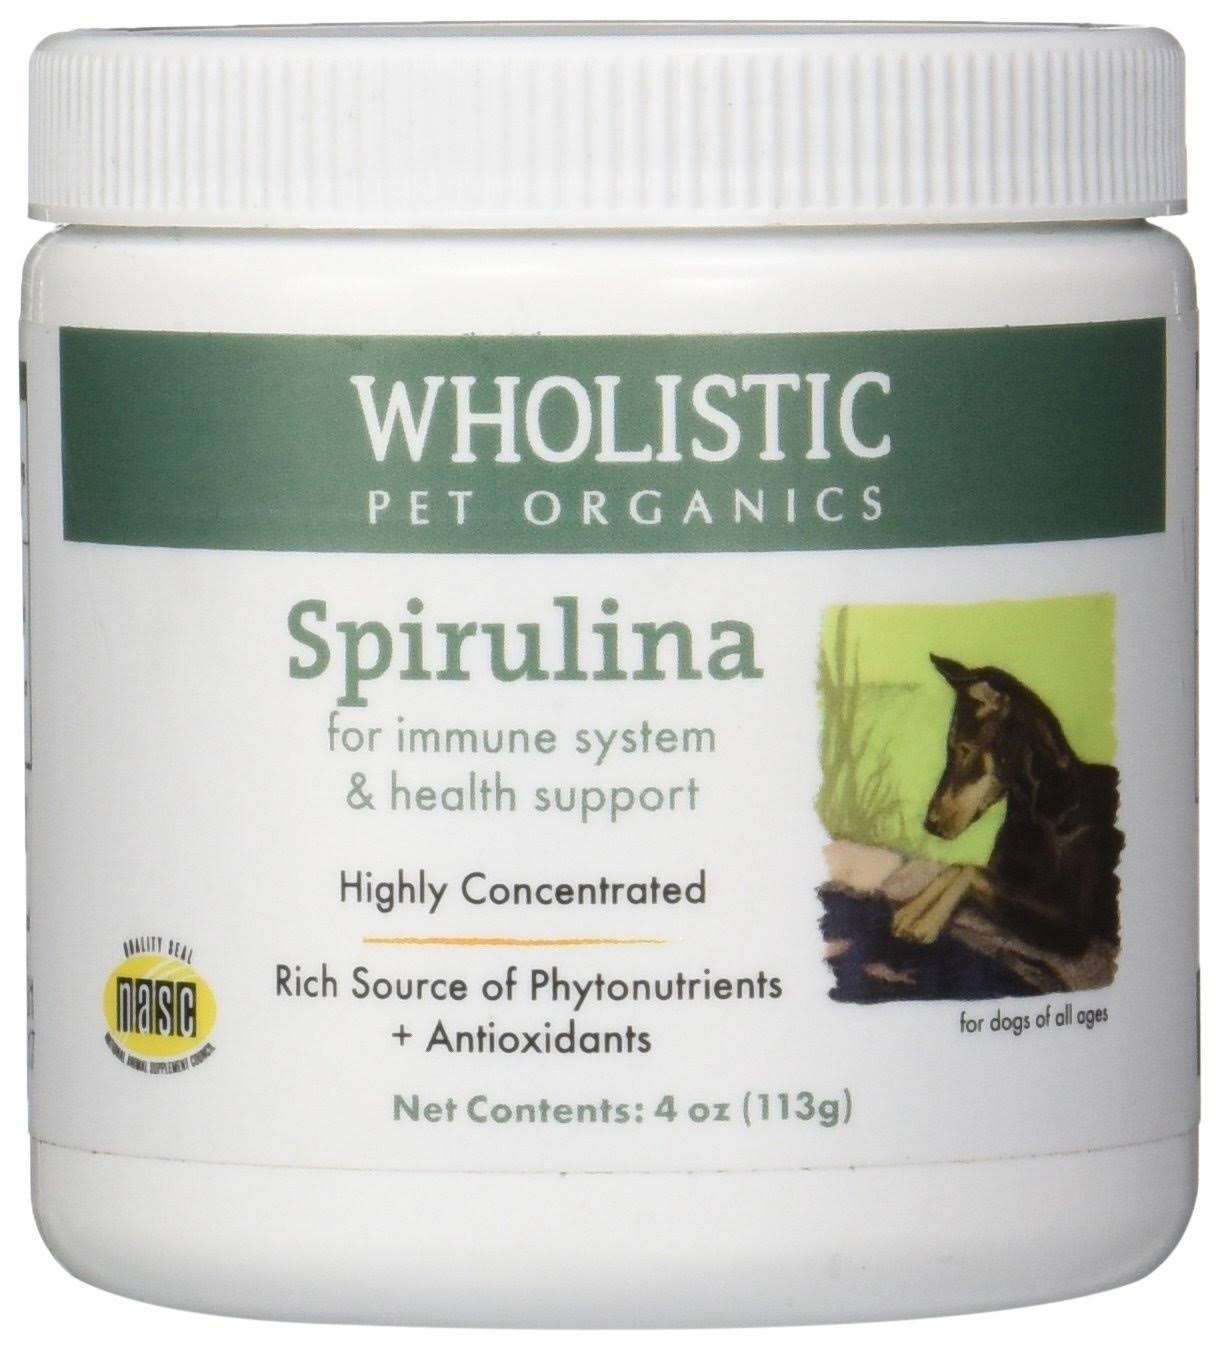 Wholistic Pet Organics Spirulina Dogs Supplement - 4oz